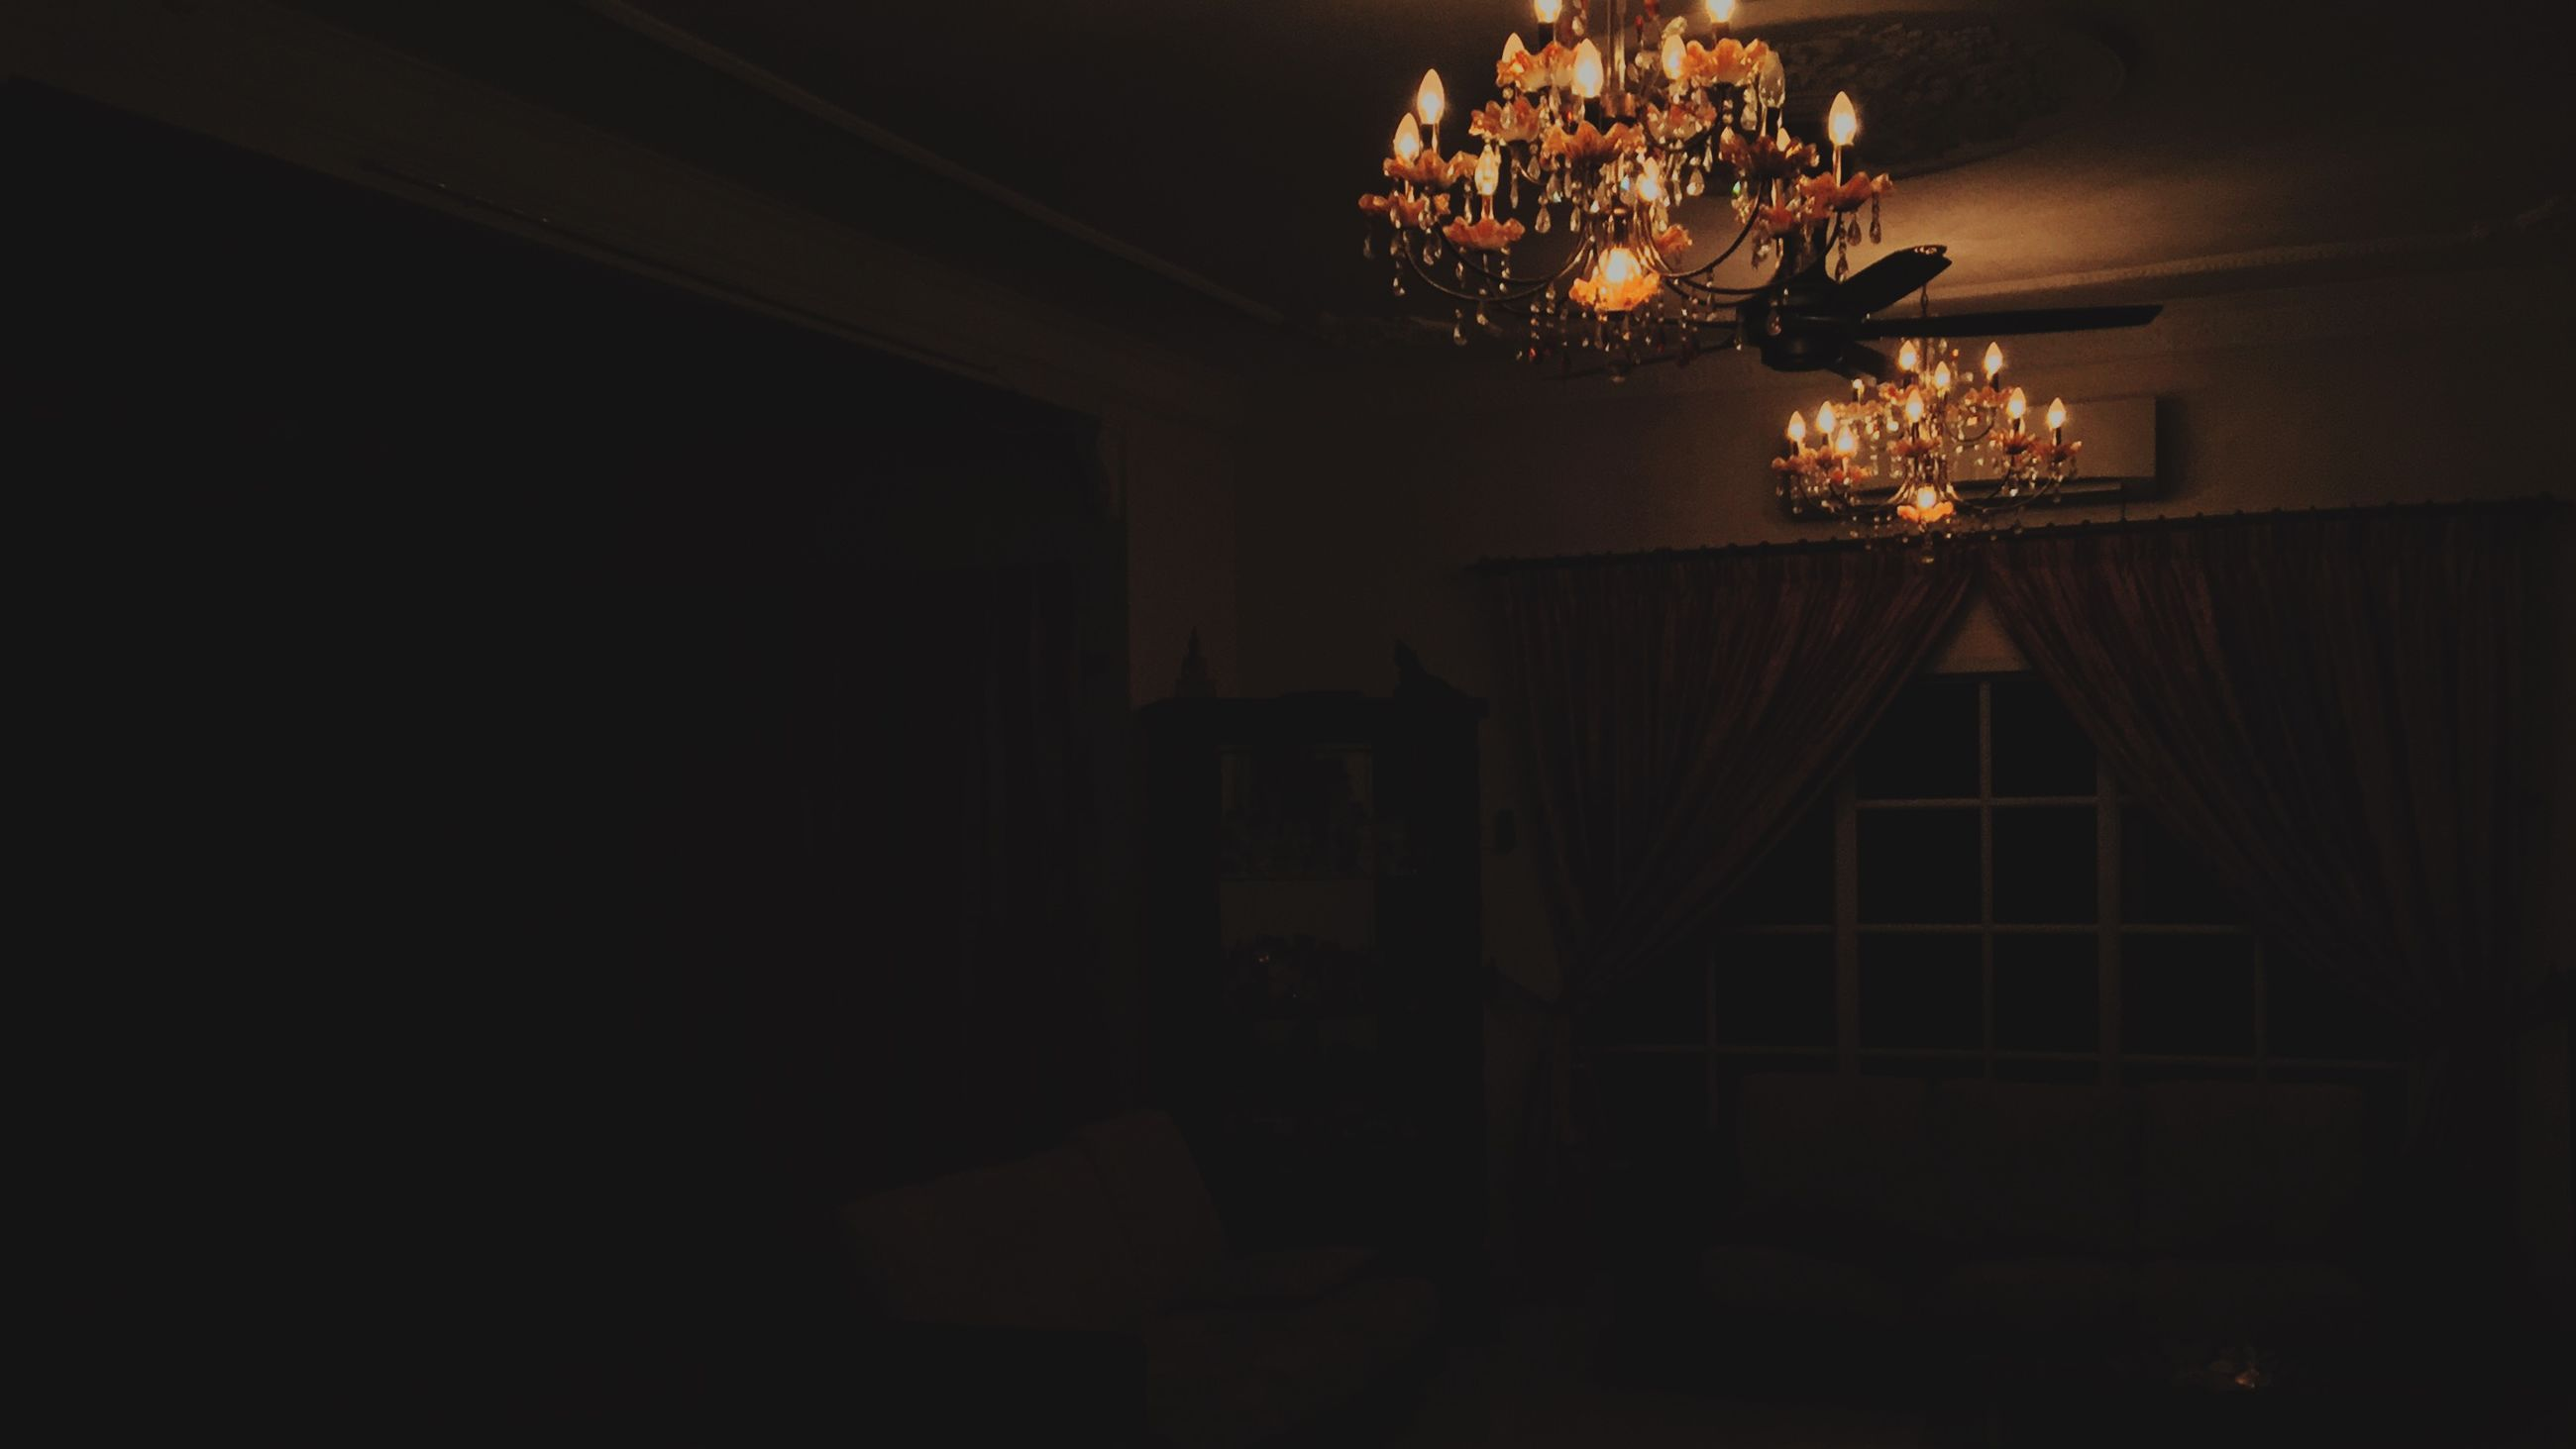 indoors, illuminated, lighting equipment, decoration, chandelier, ceiling, night, hanging, low angle view, home interior, electric lamp, electric light, decor, dark, light - natural phenomenon, electricity, built structure, architecture, no people, glowing